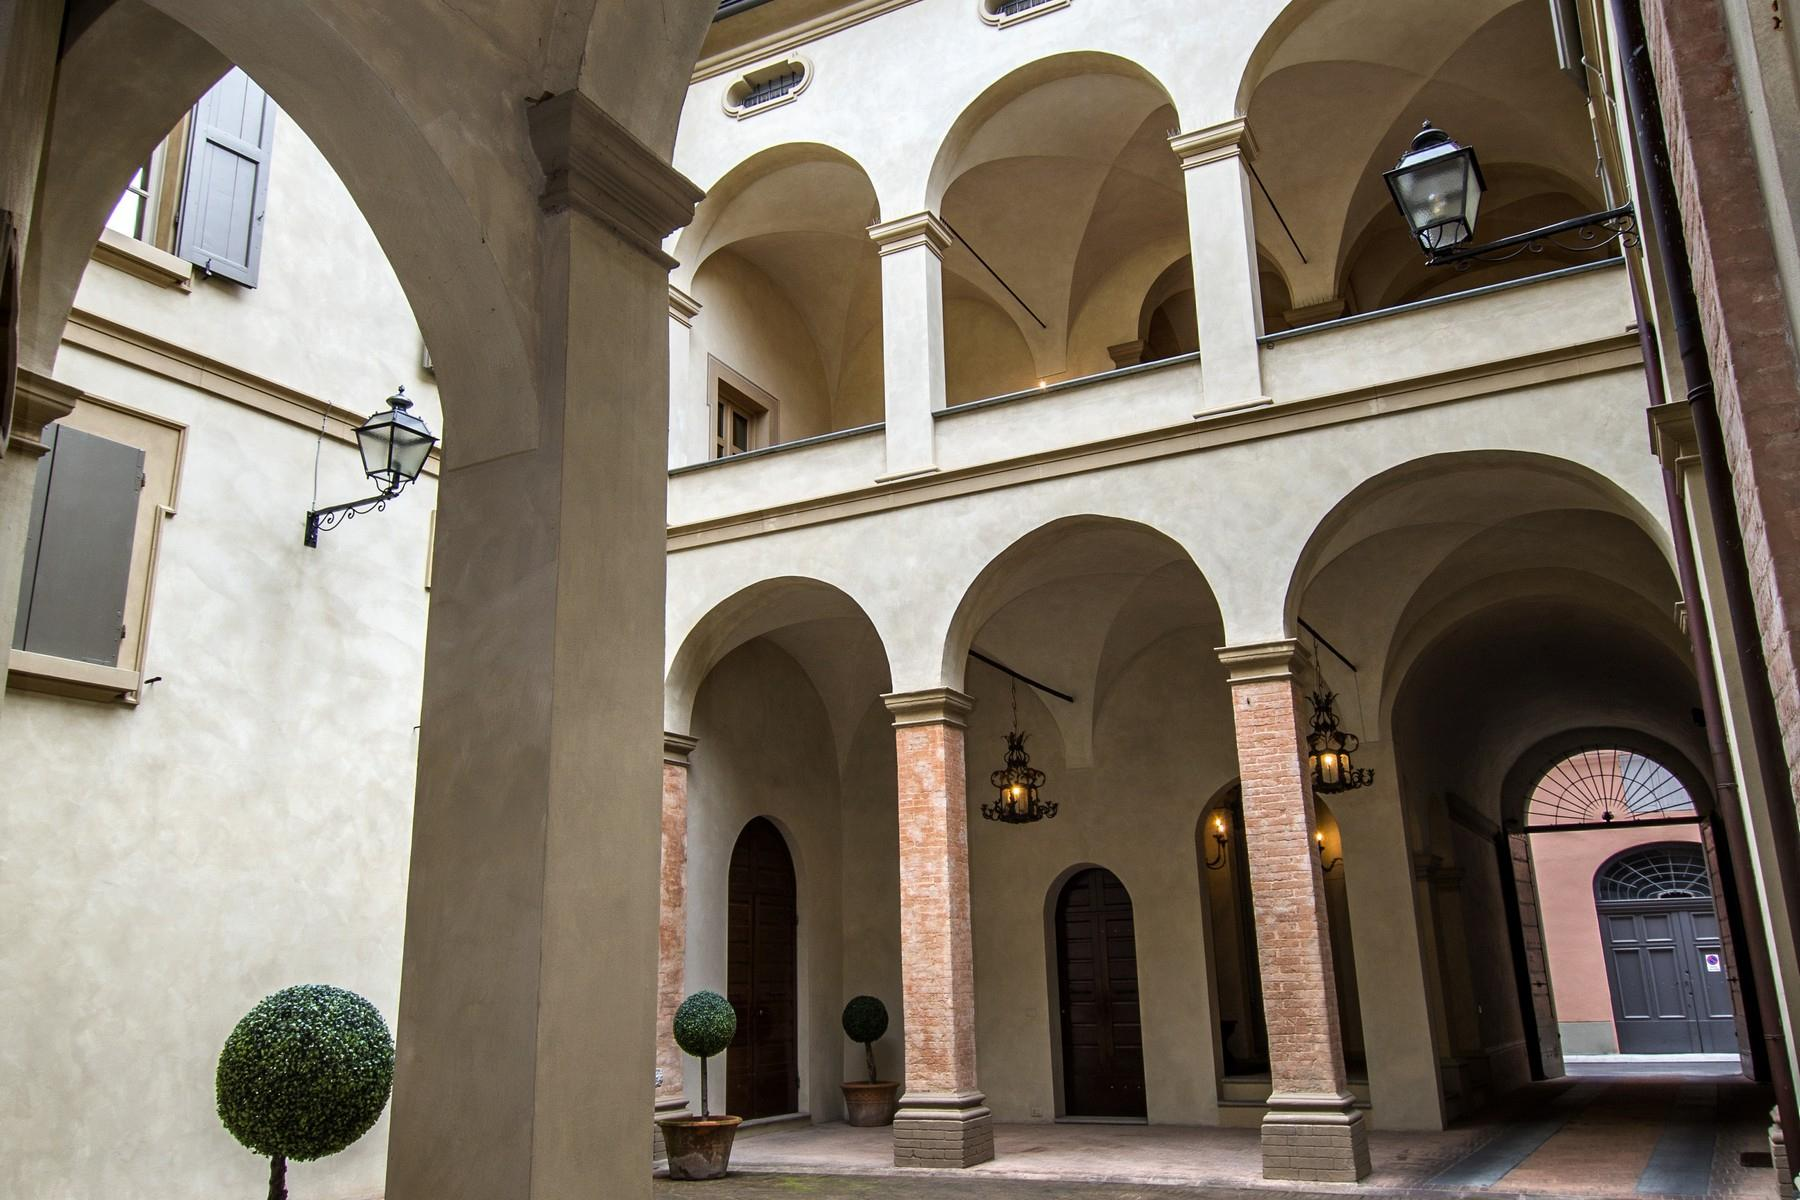 Magnificent historic palace in the heart of Reggio Emilia - 17